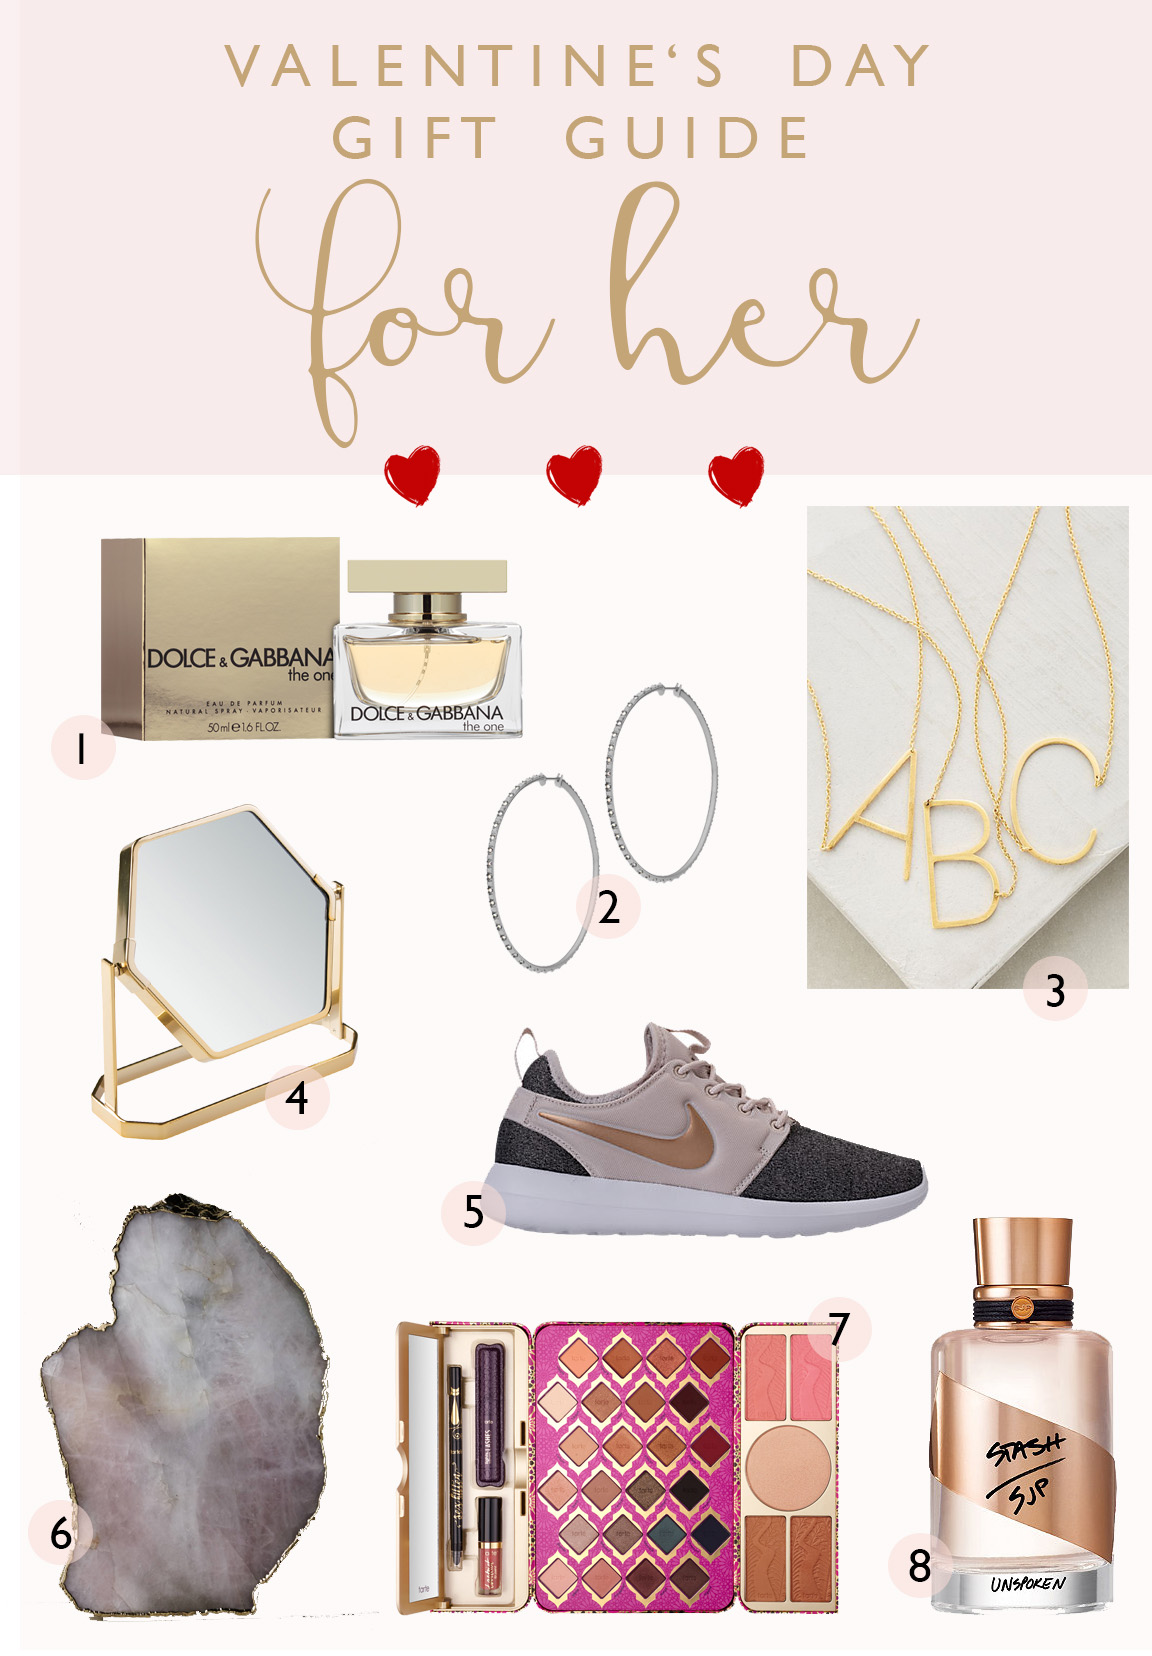 VALENTINE'S DAY gift guide FOR HER